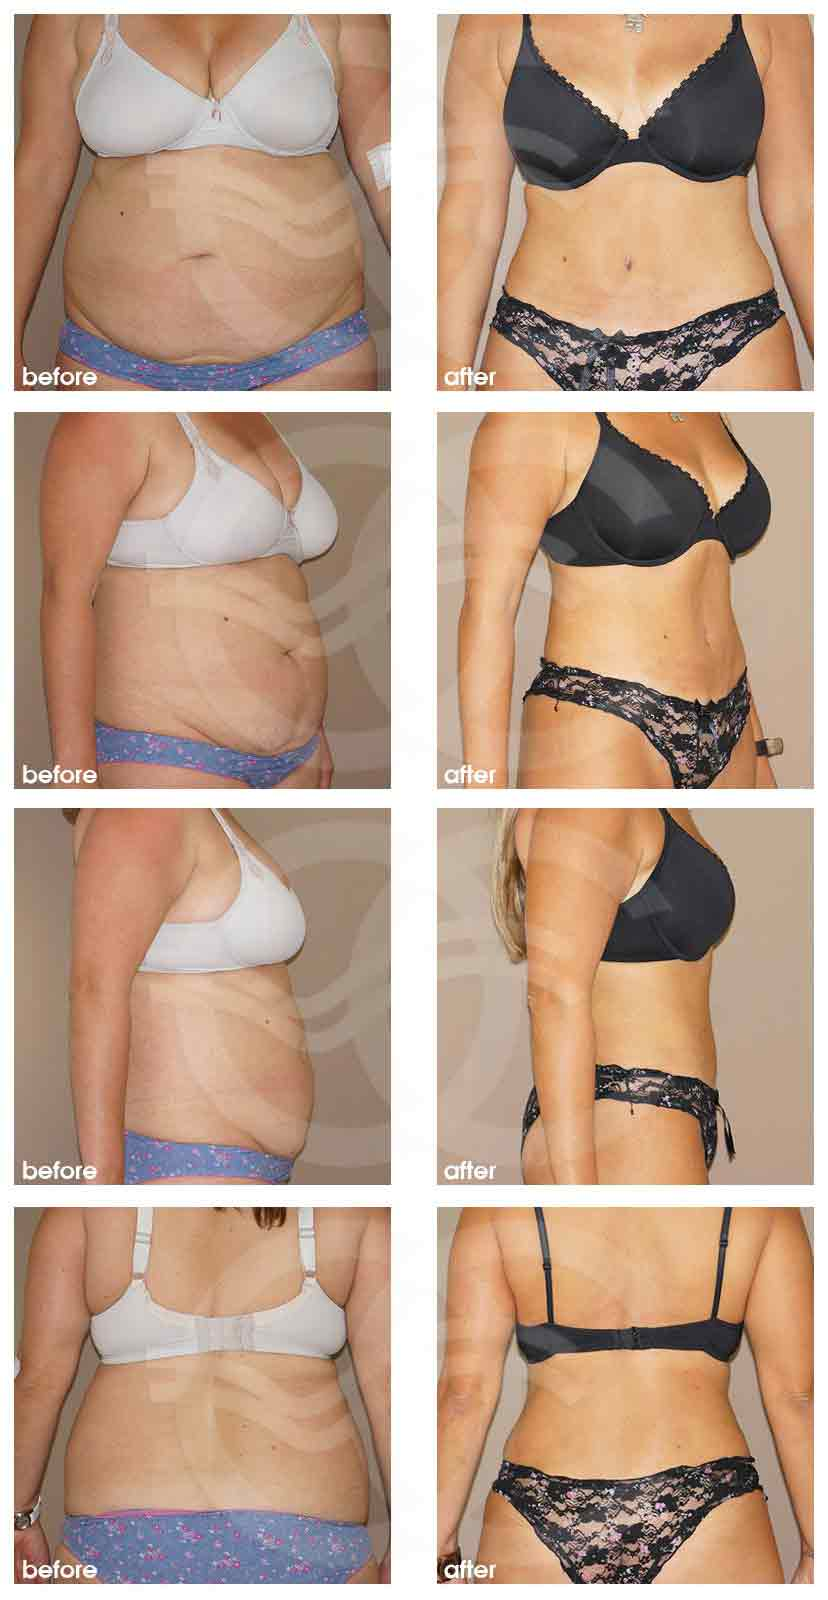 Ocean Clinic Tummy Tuck with Liposuction Before After Photo Marbella Spain